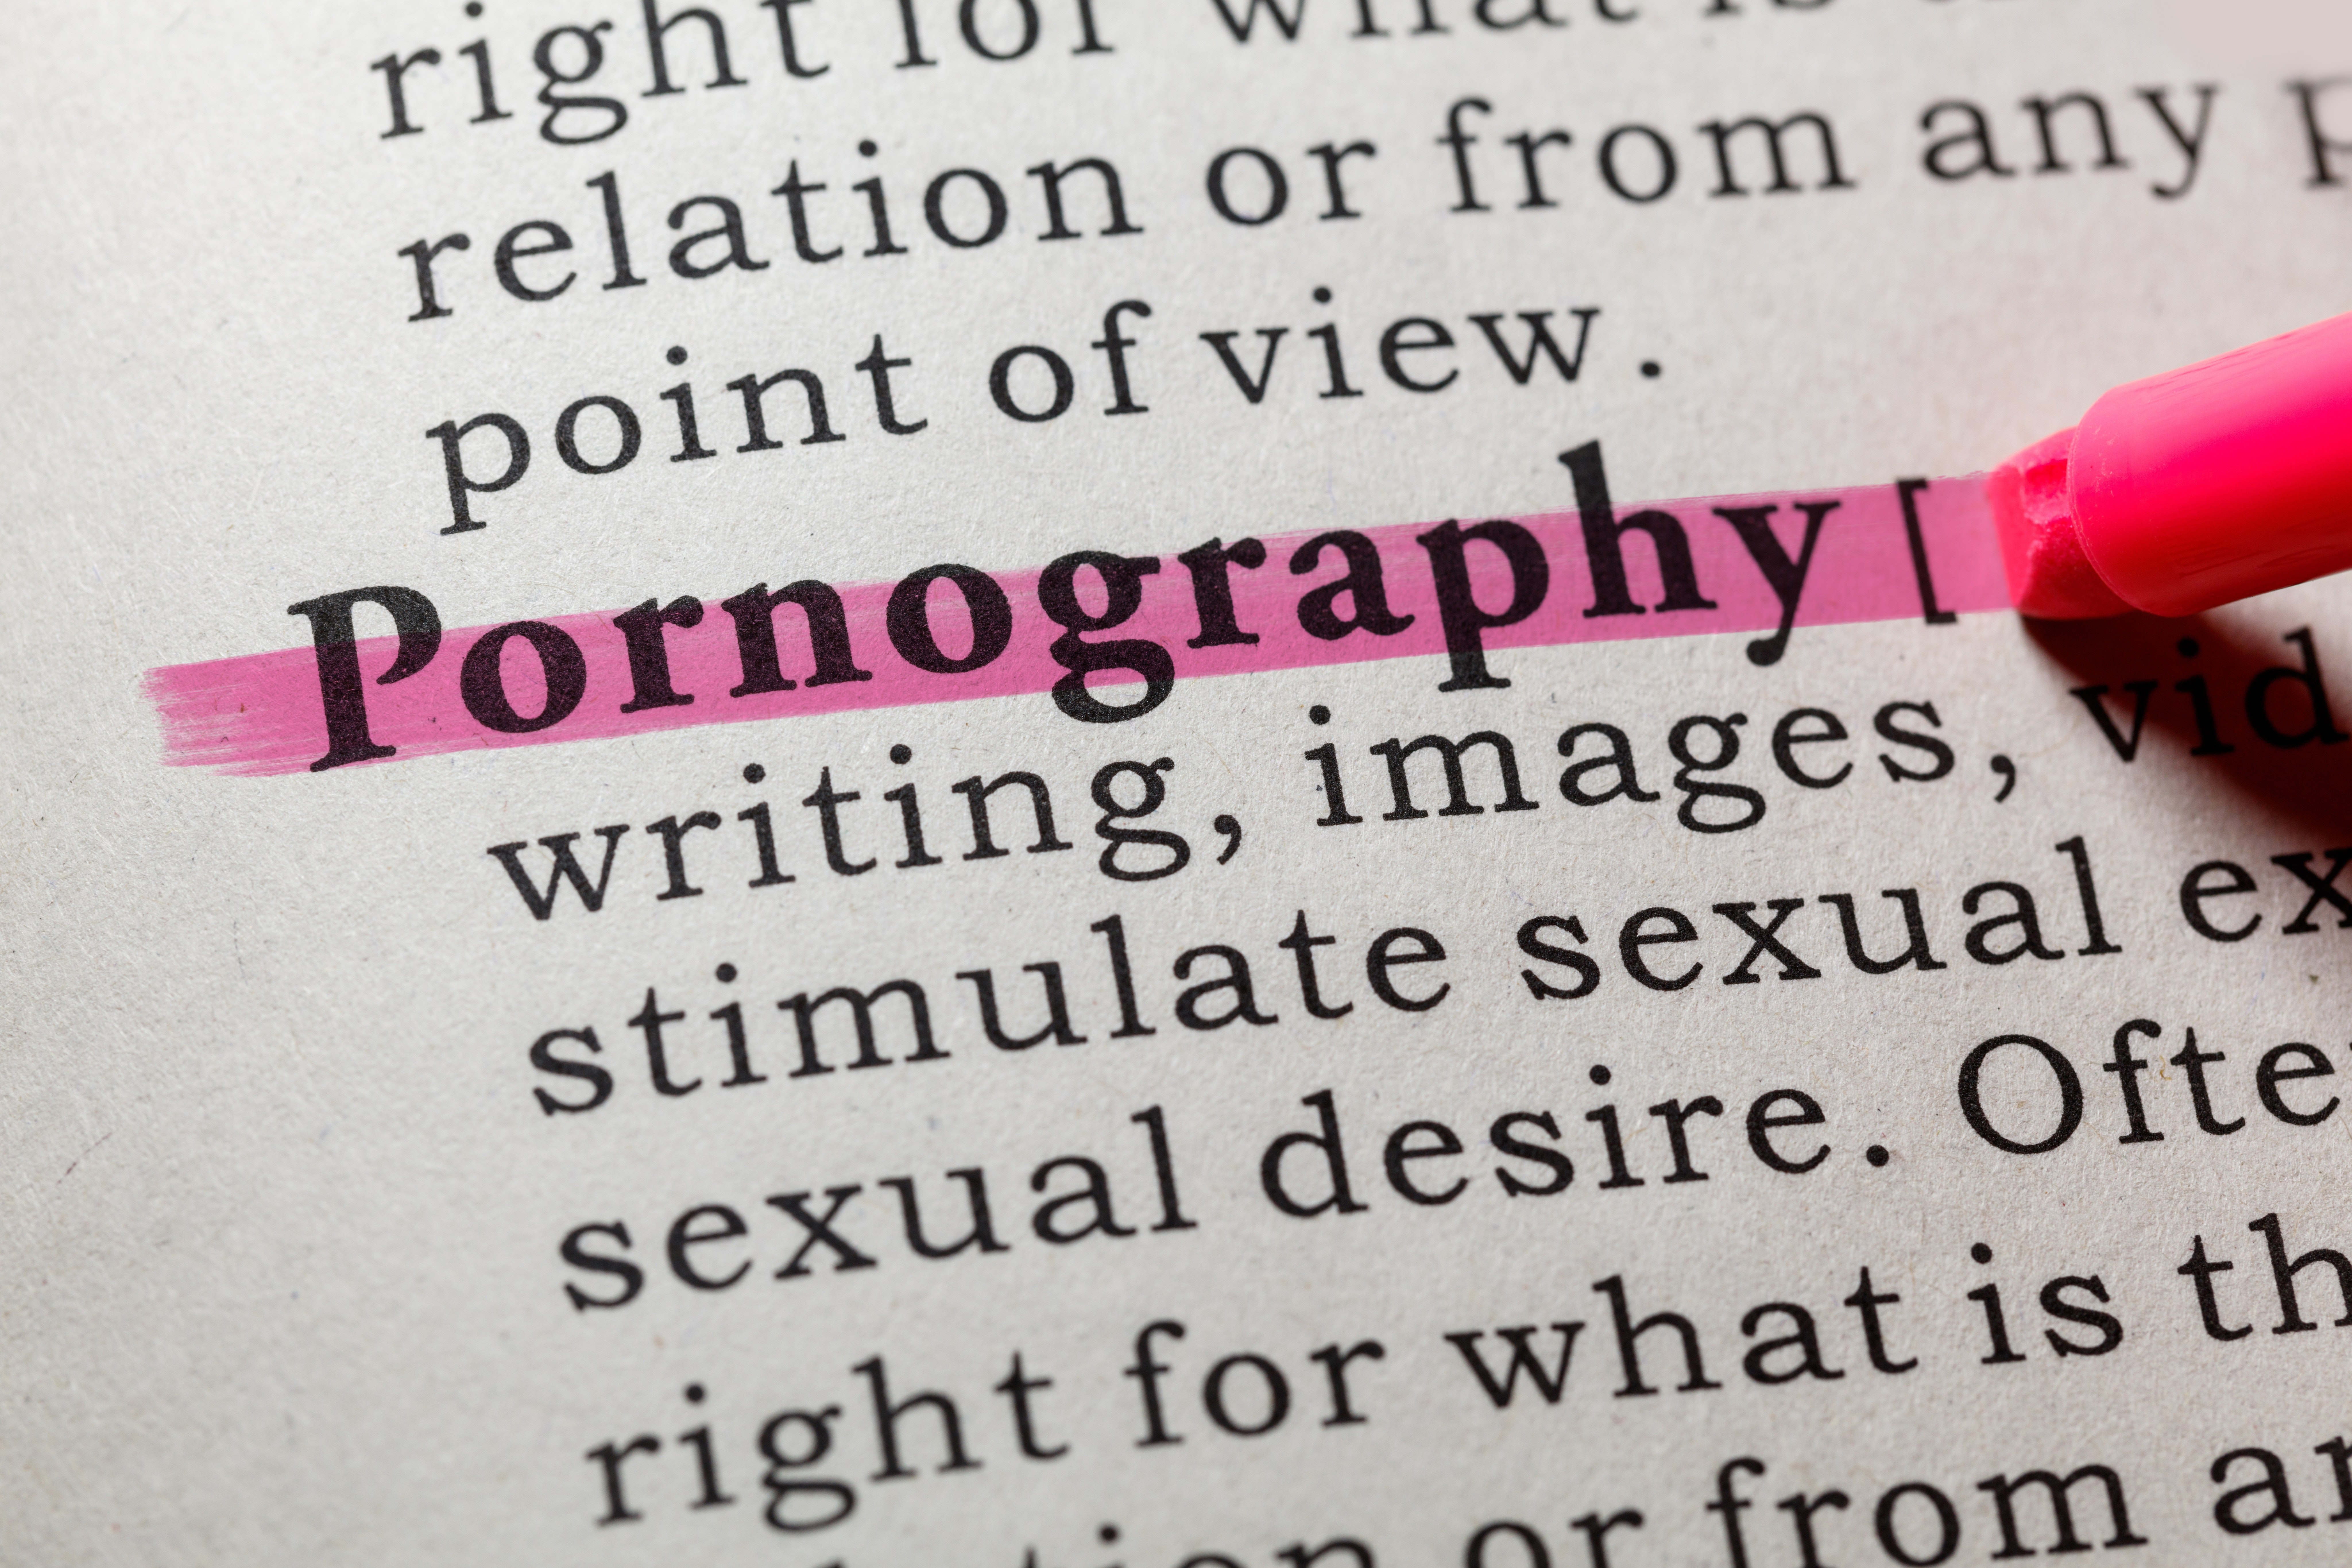 We need a new definition of pornography - with consent at the centre